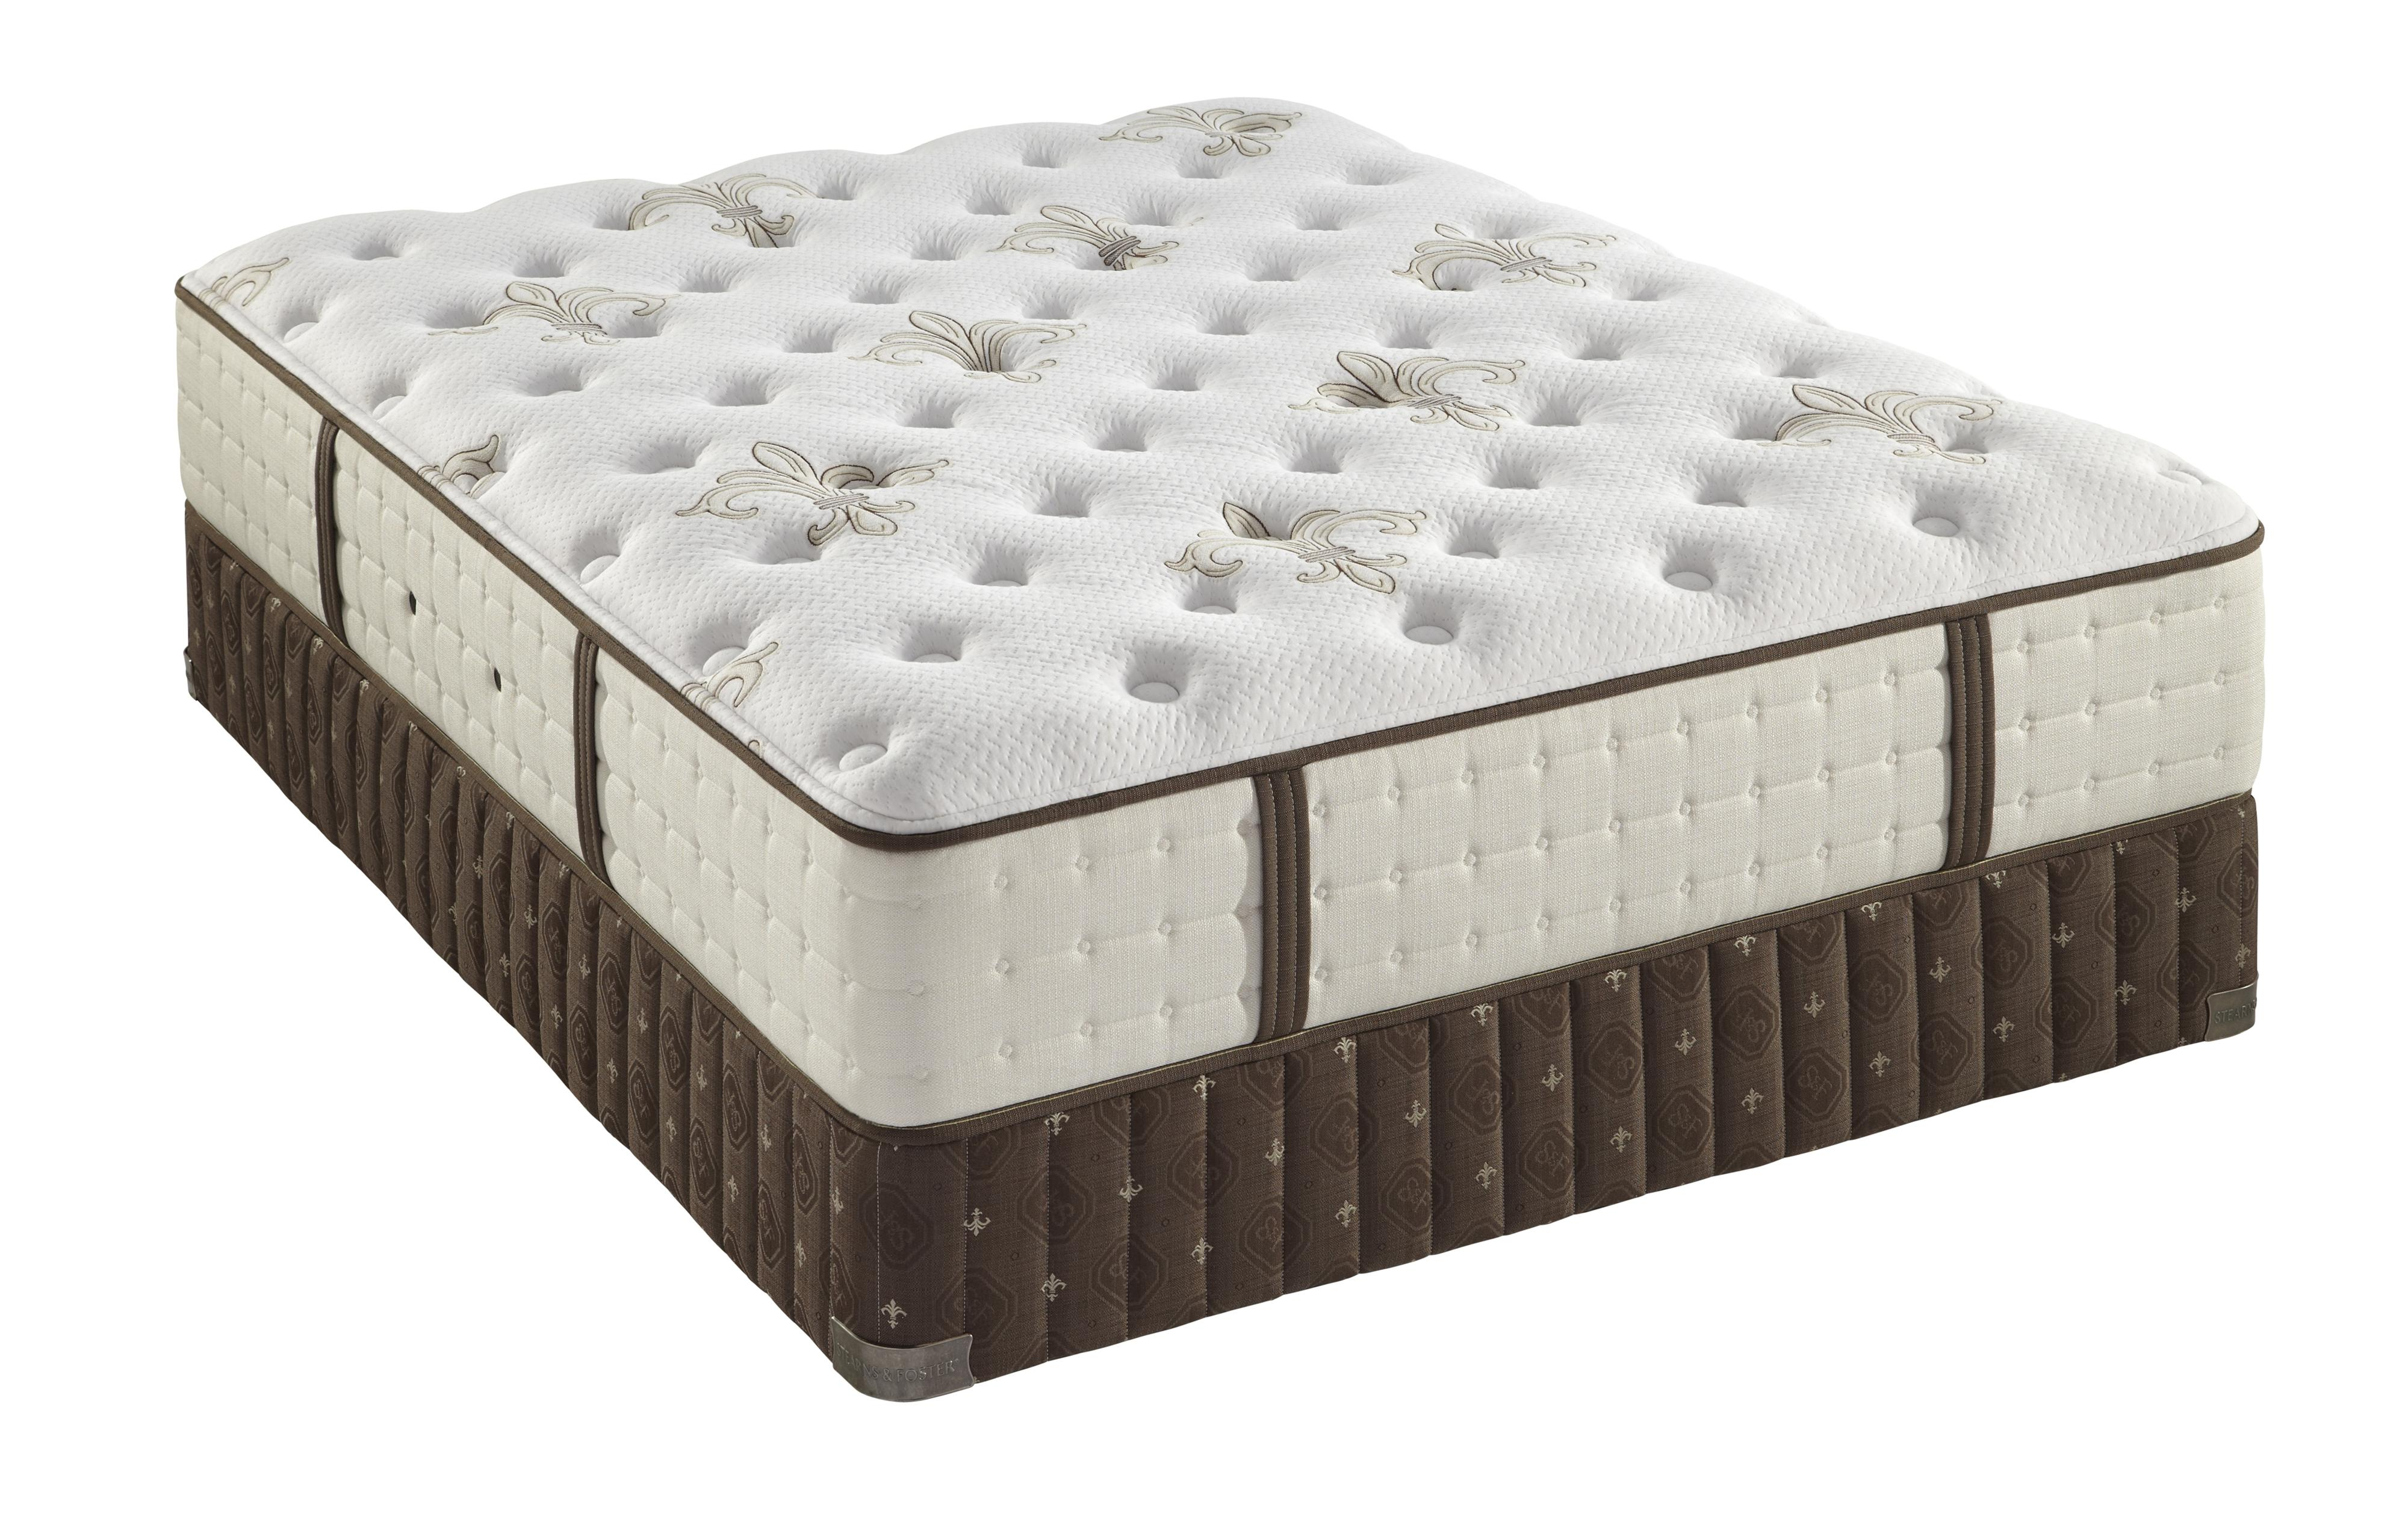 Stearns & Foster Coningsby Full Luxury Plush Mattress - Item Number: LuxPlush-F